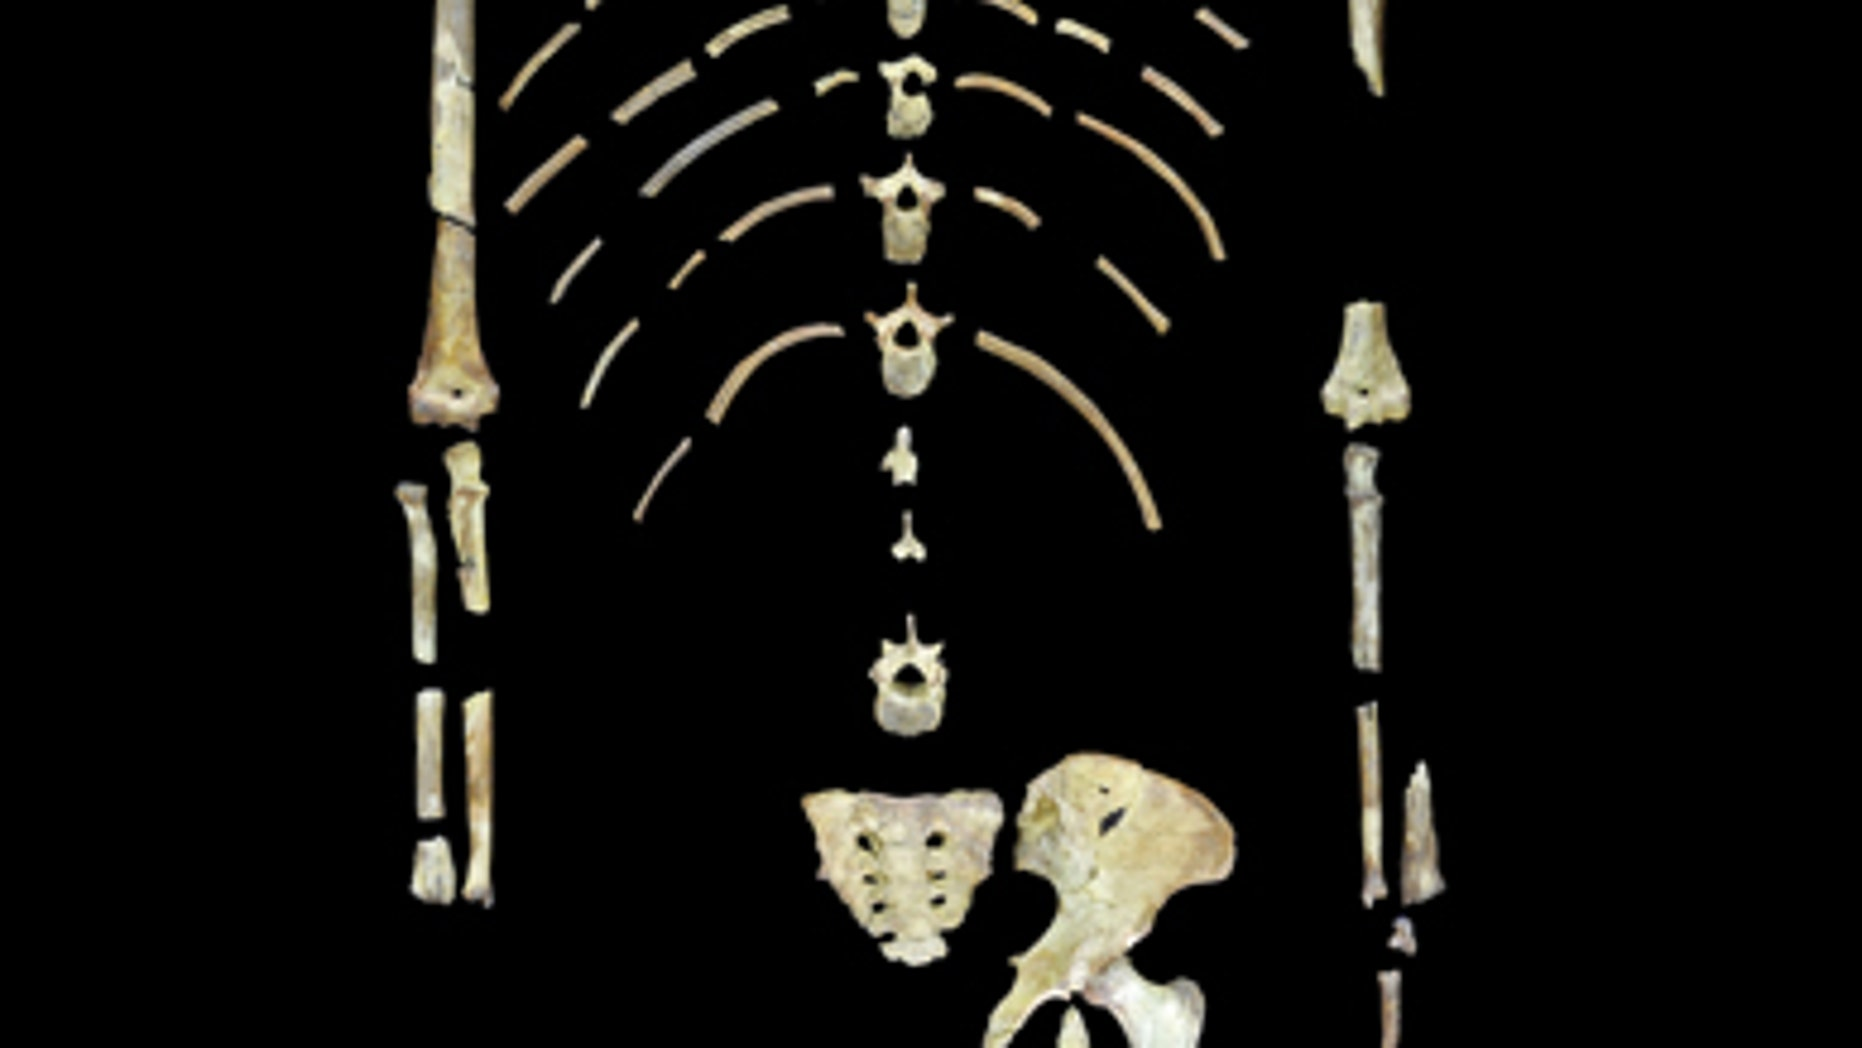 This undated image shows the skeleton of Lucy, a fossil specimen of an early human ancestor, Australopithecus afarensis.